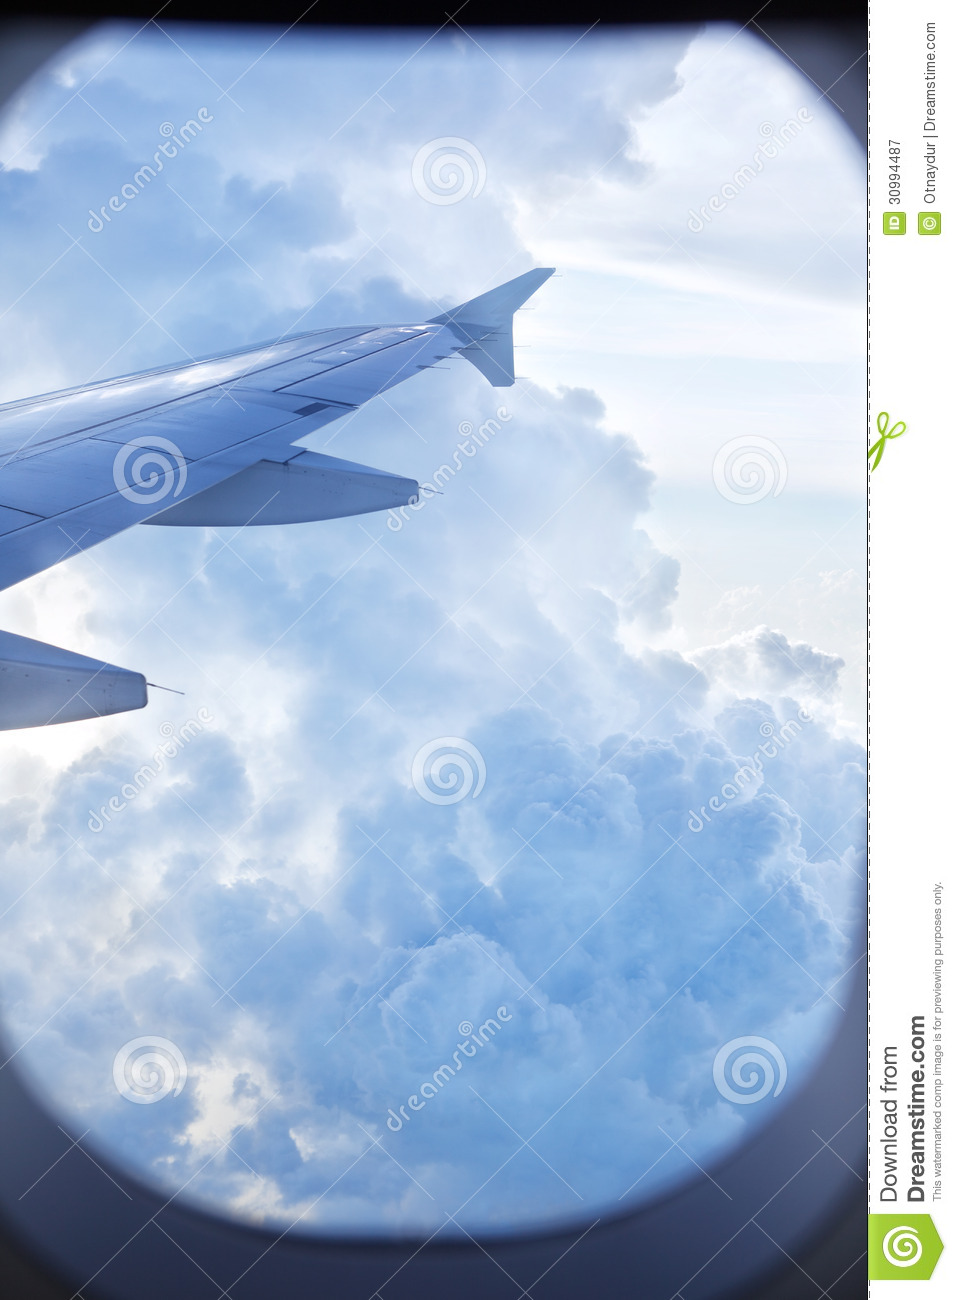 Wing of plane royalty free stock photography image 30994487 Airplane cabin noise